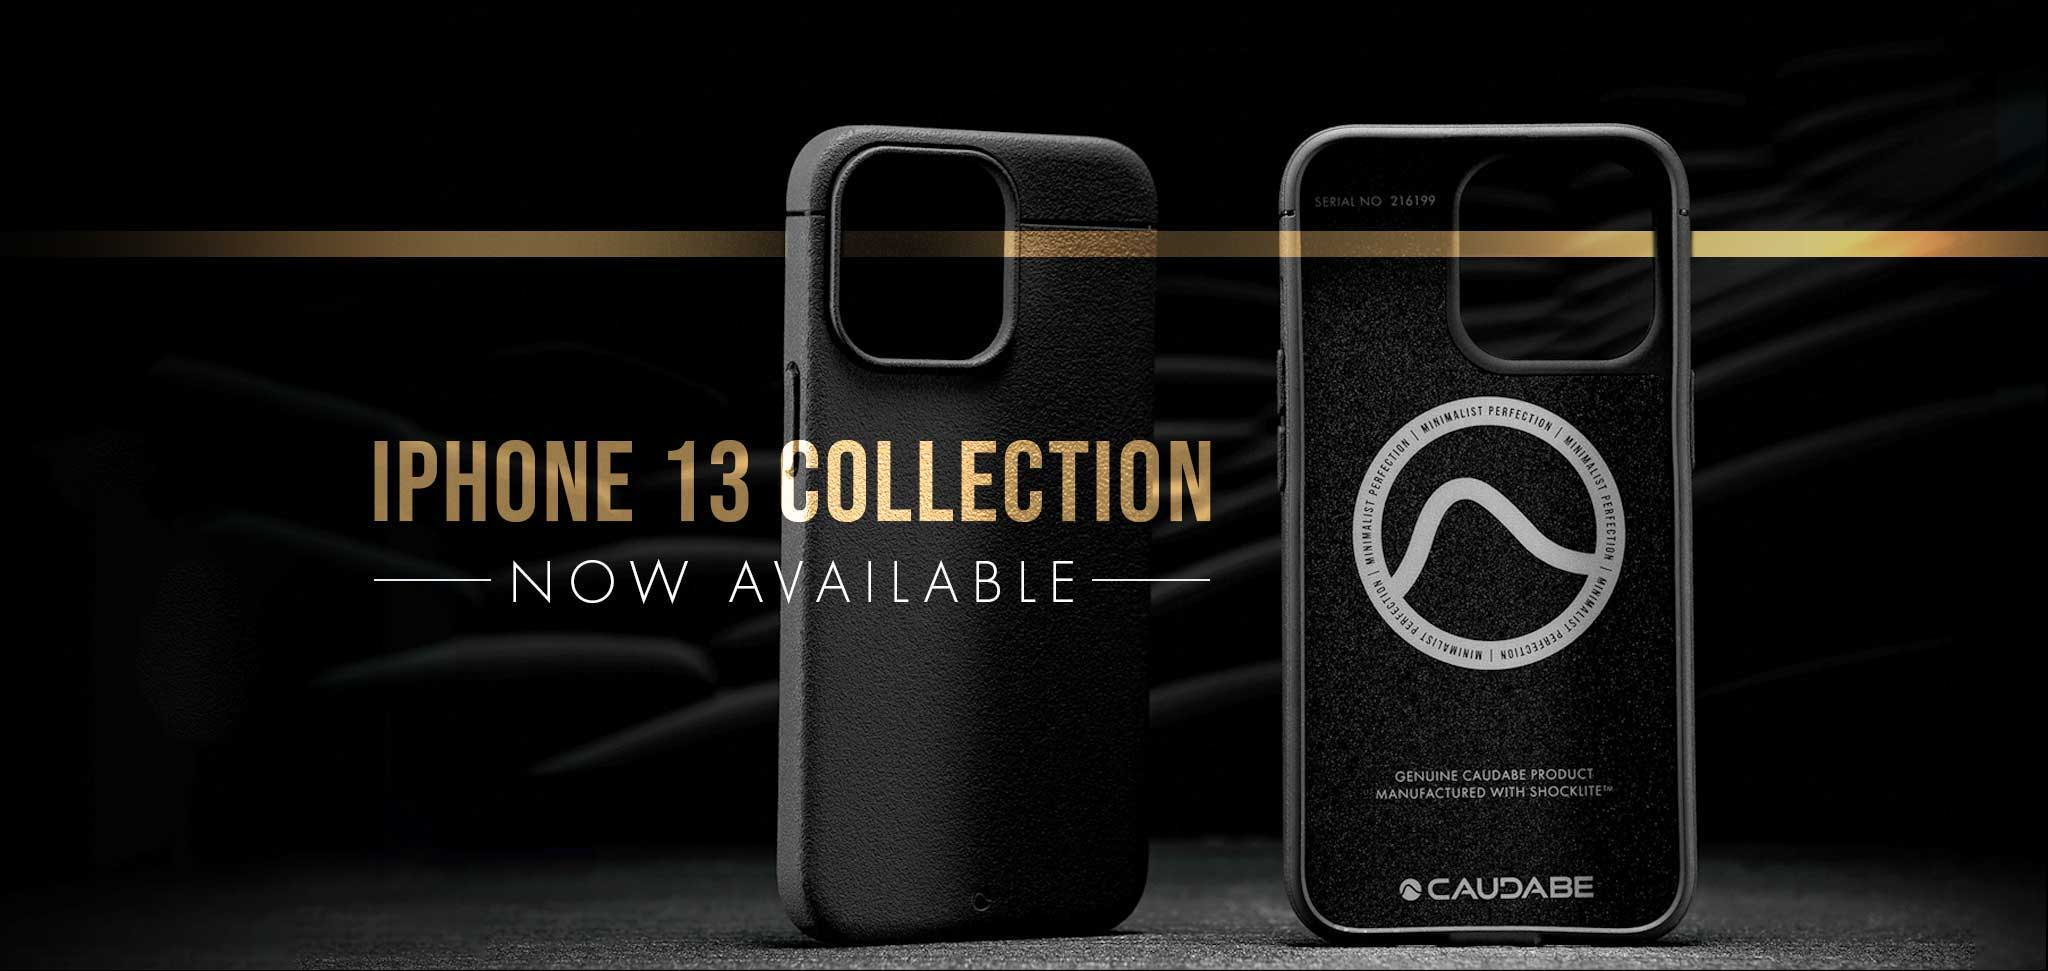 iPhone 13 collection | Now available